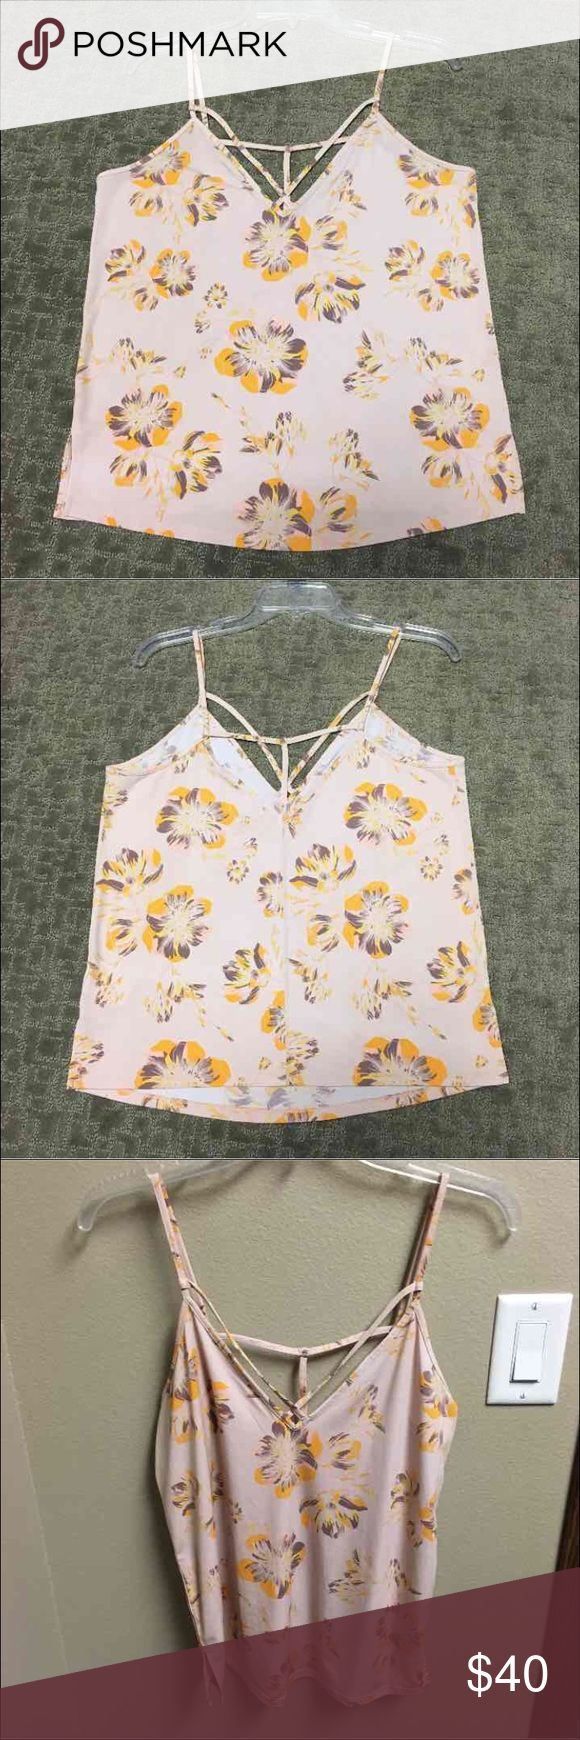 Free people tank top Gorgeous light pink free people strappy tank top. This tank top is in great condition and it is very flowy. It's has purple, yellow, and pink flowers on it and is perfect for spring. It's a size small but could definitely fit bigger. Free People Tops Tank Tops